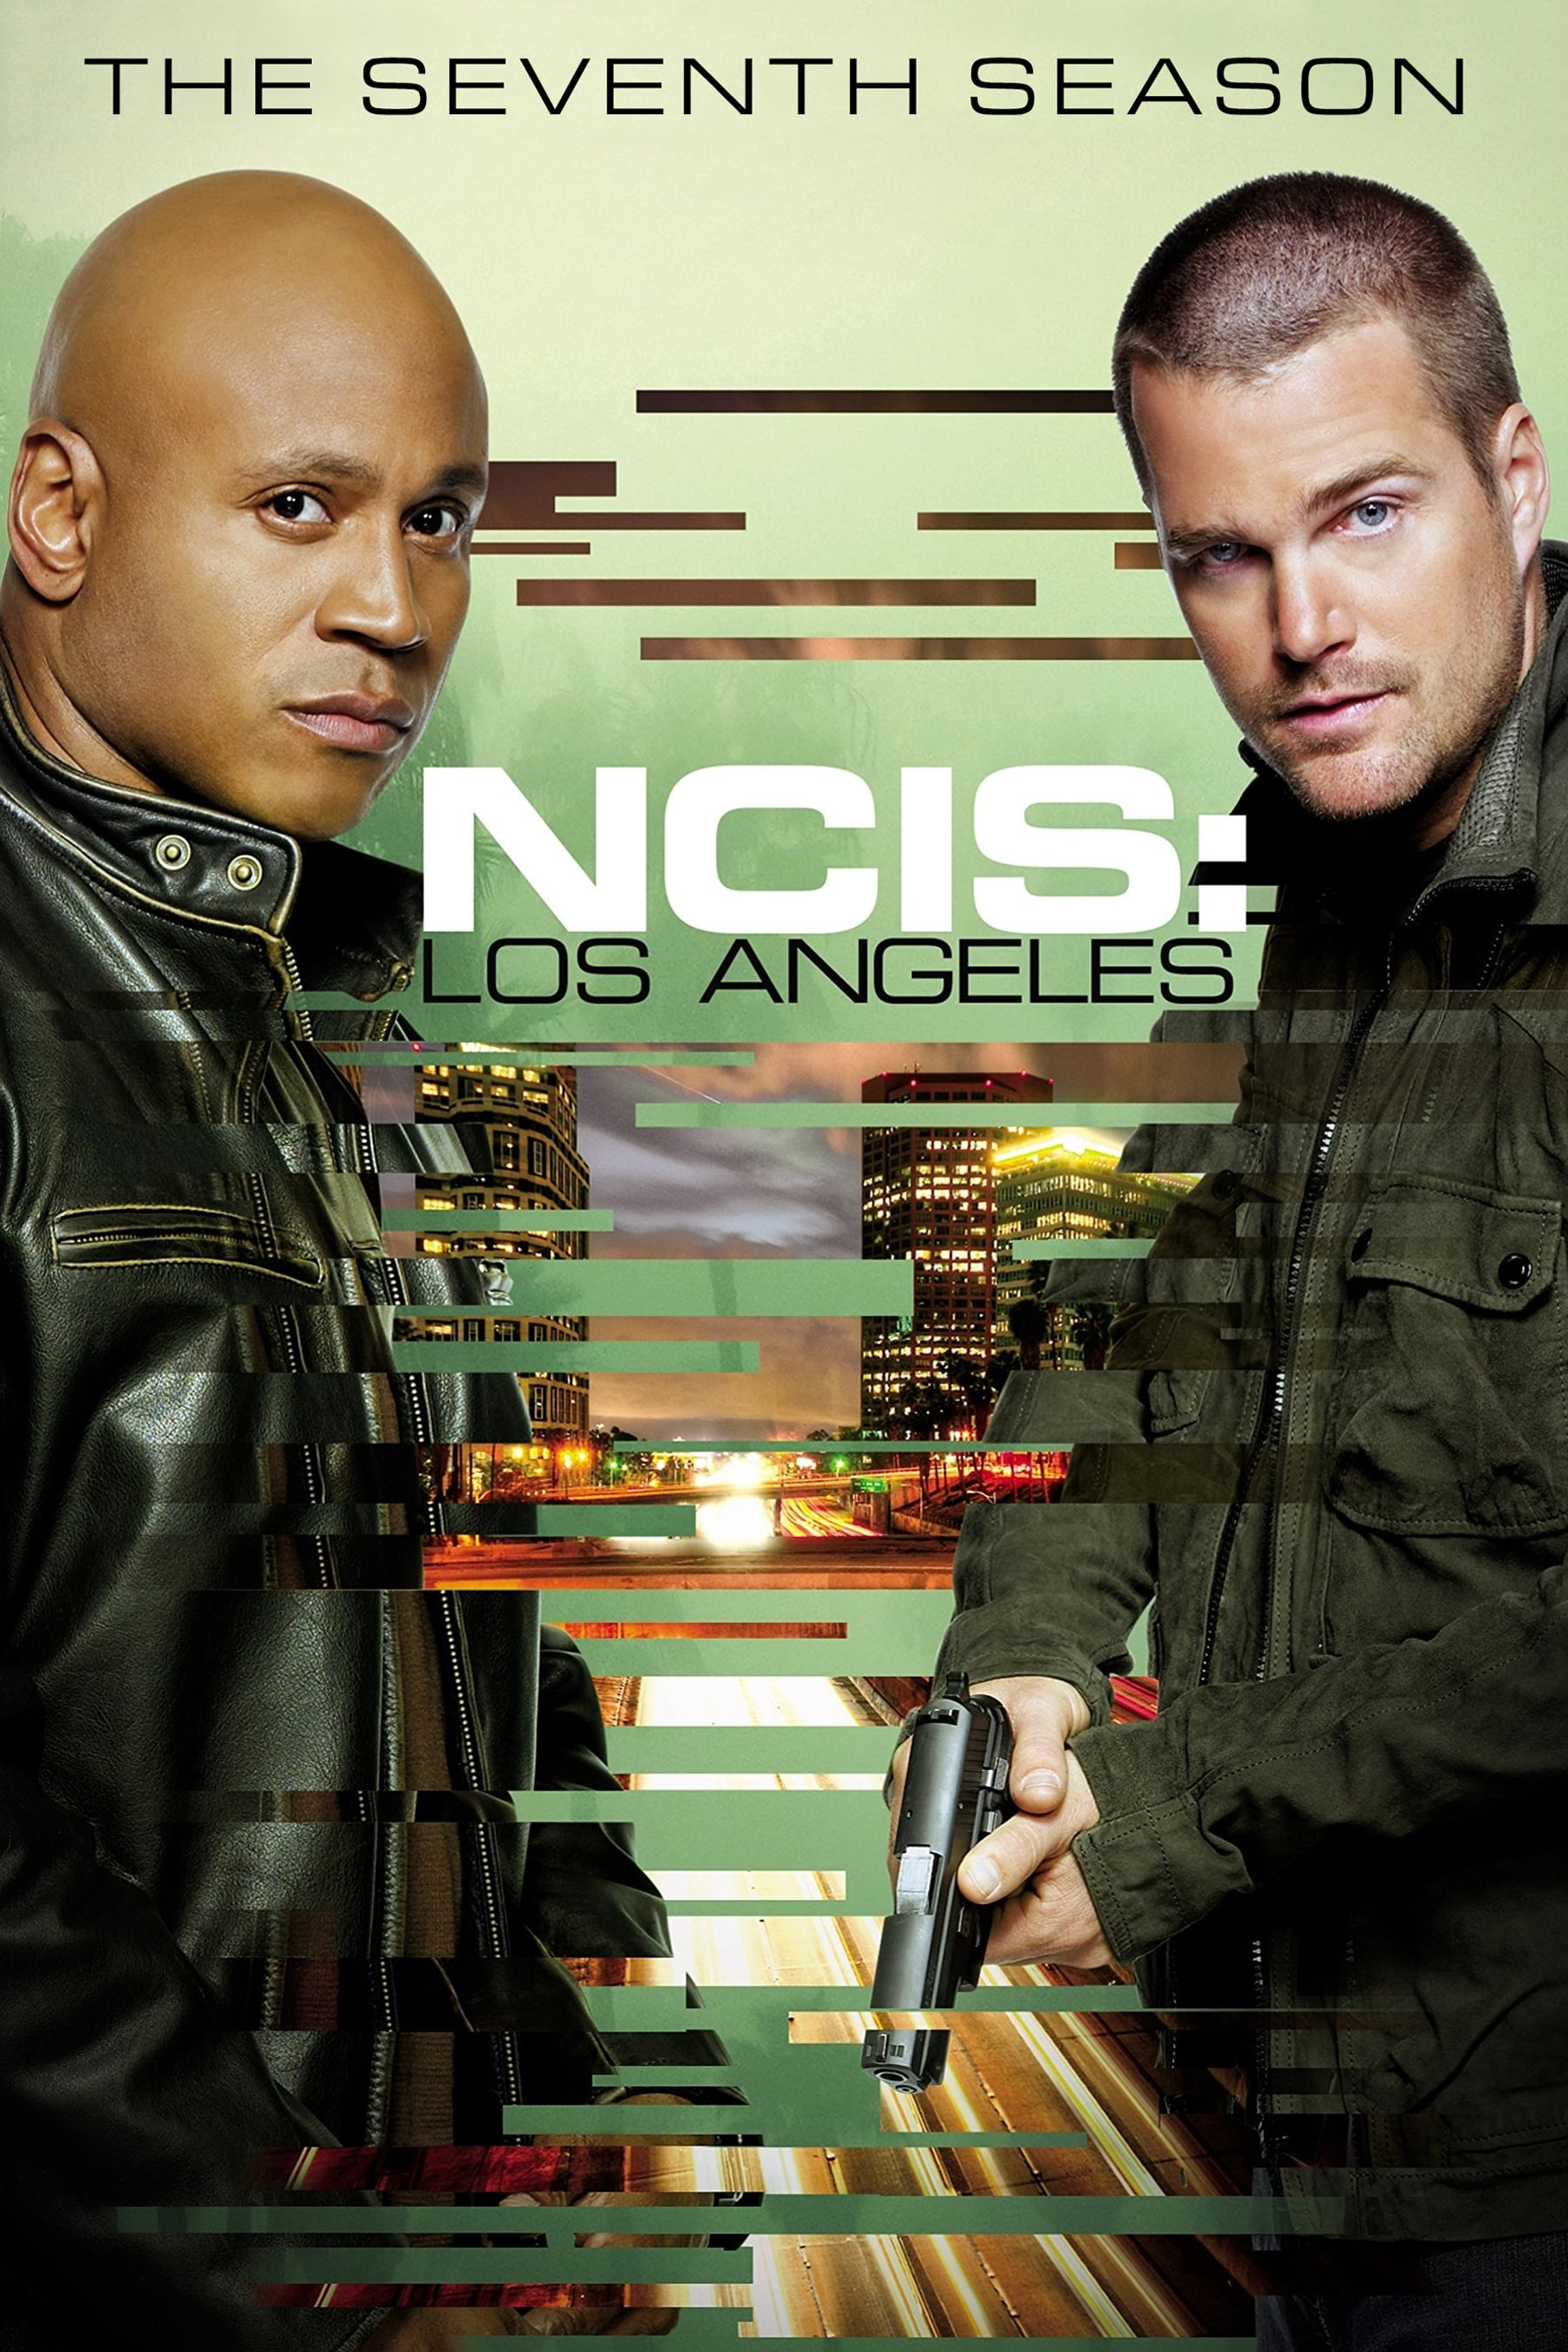 NCIS: Los Angeles Season 7